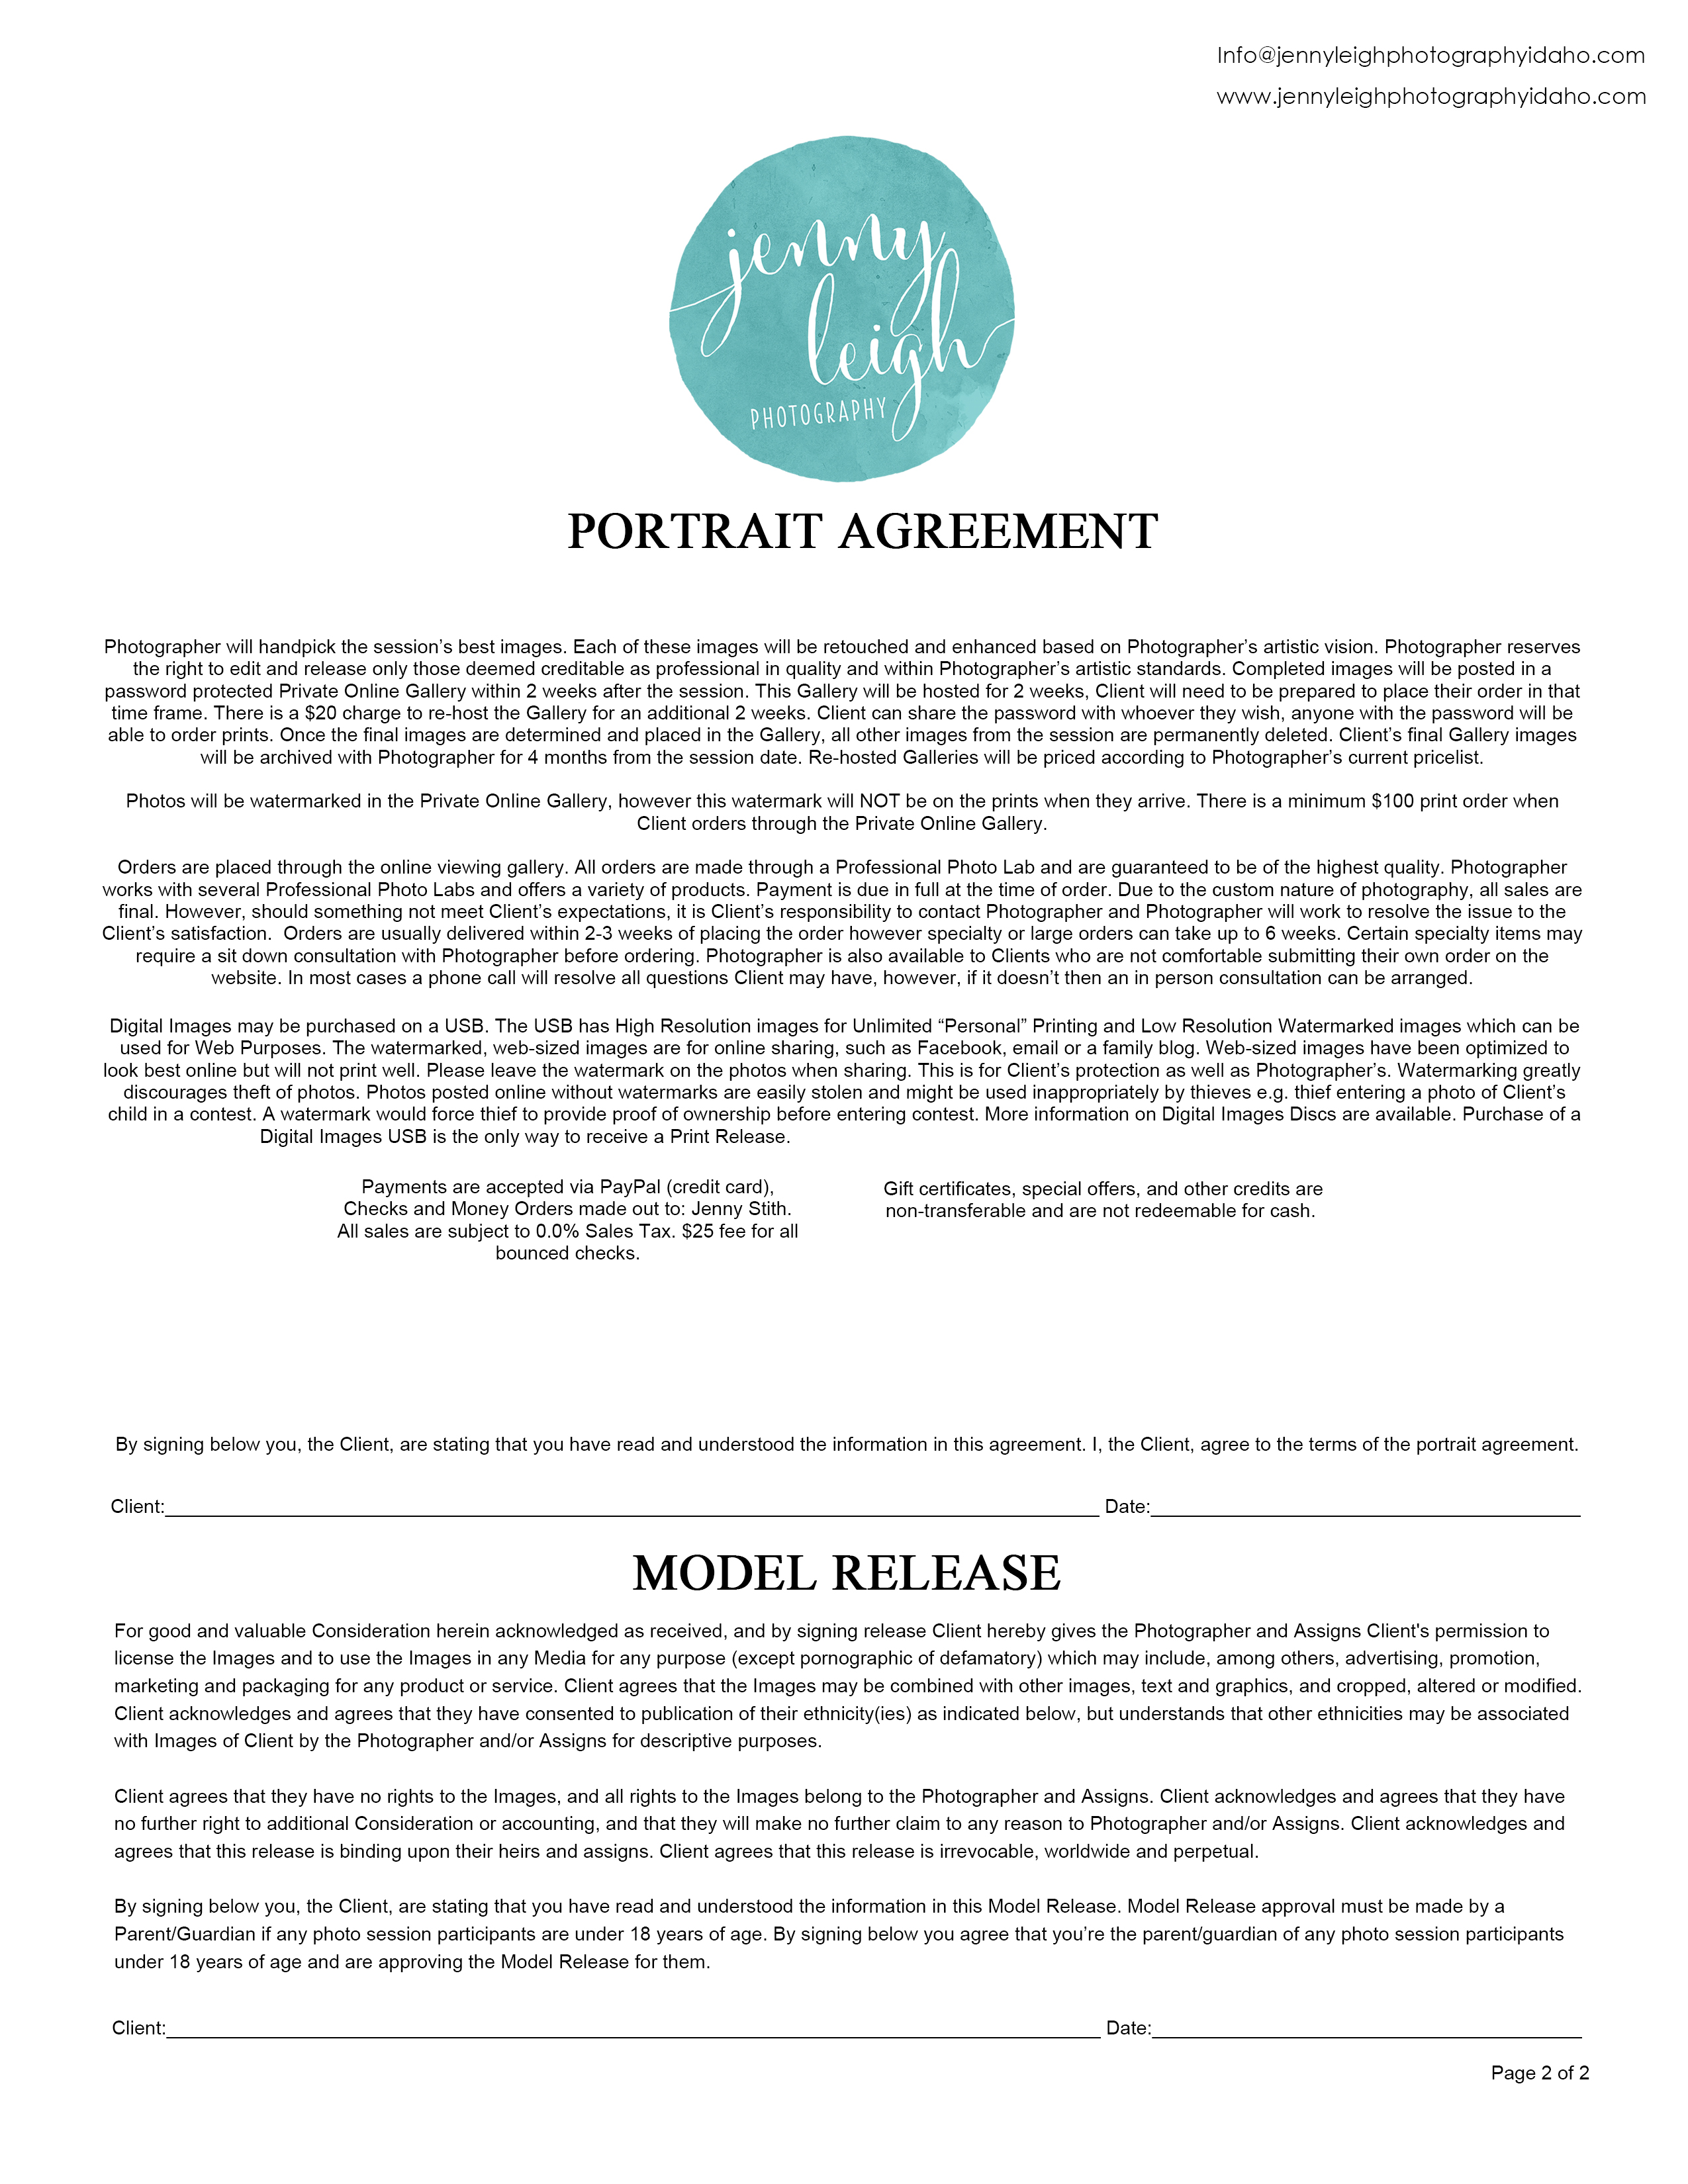 Portrait Agreement Model Release Jenny Leigh Photography